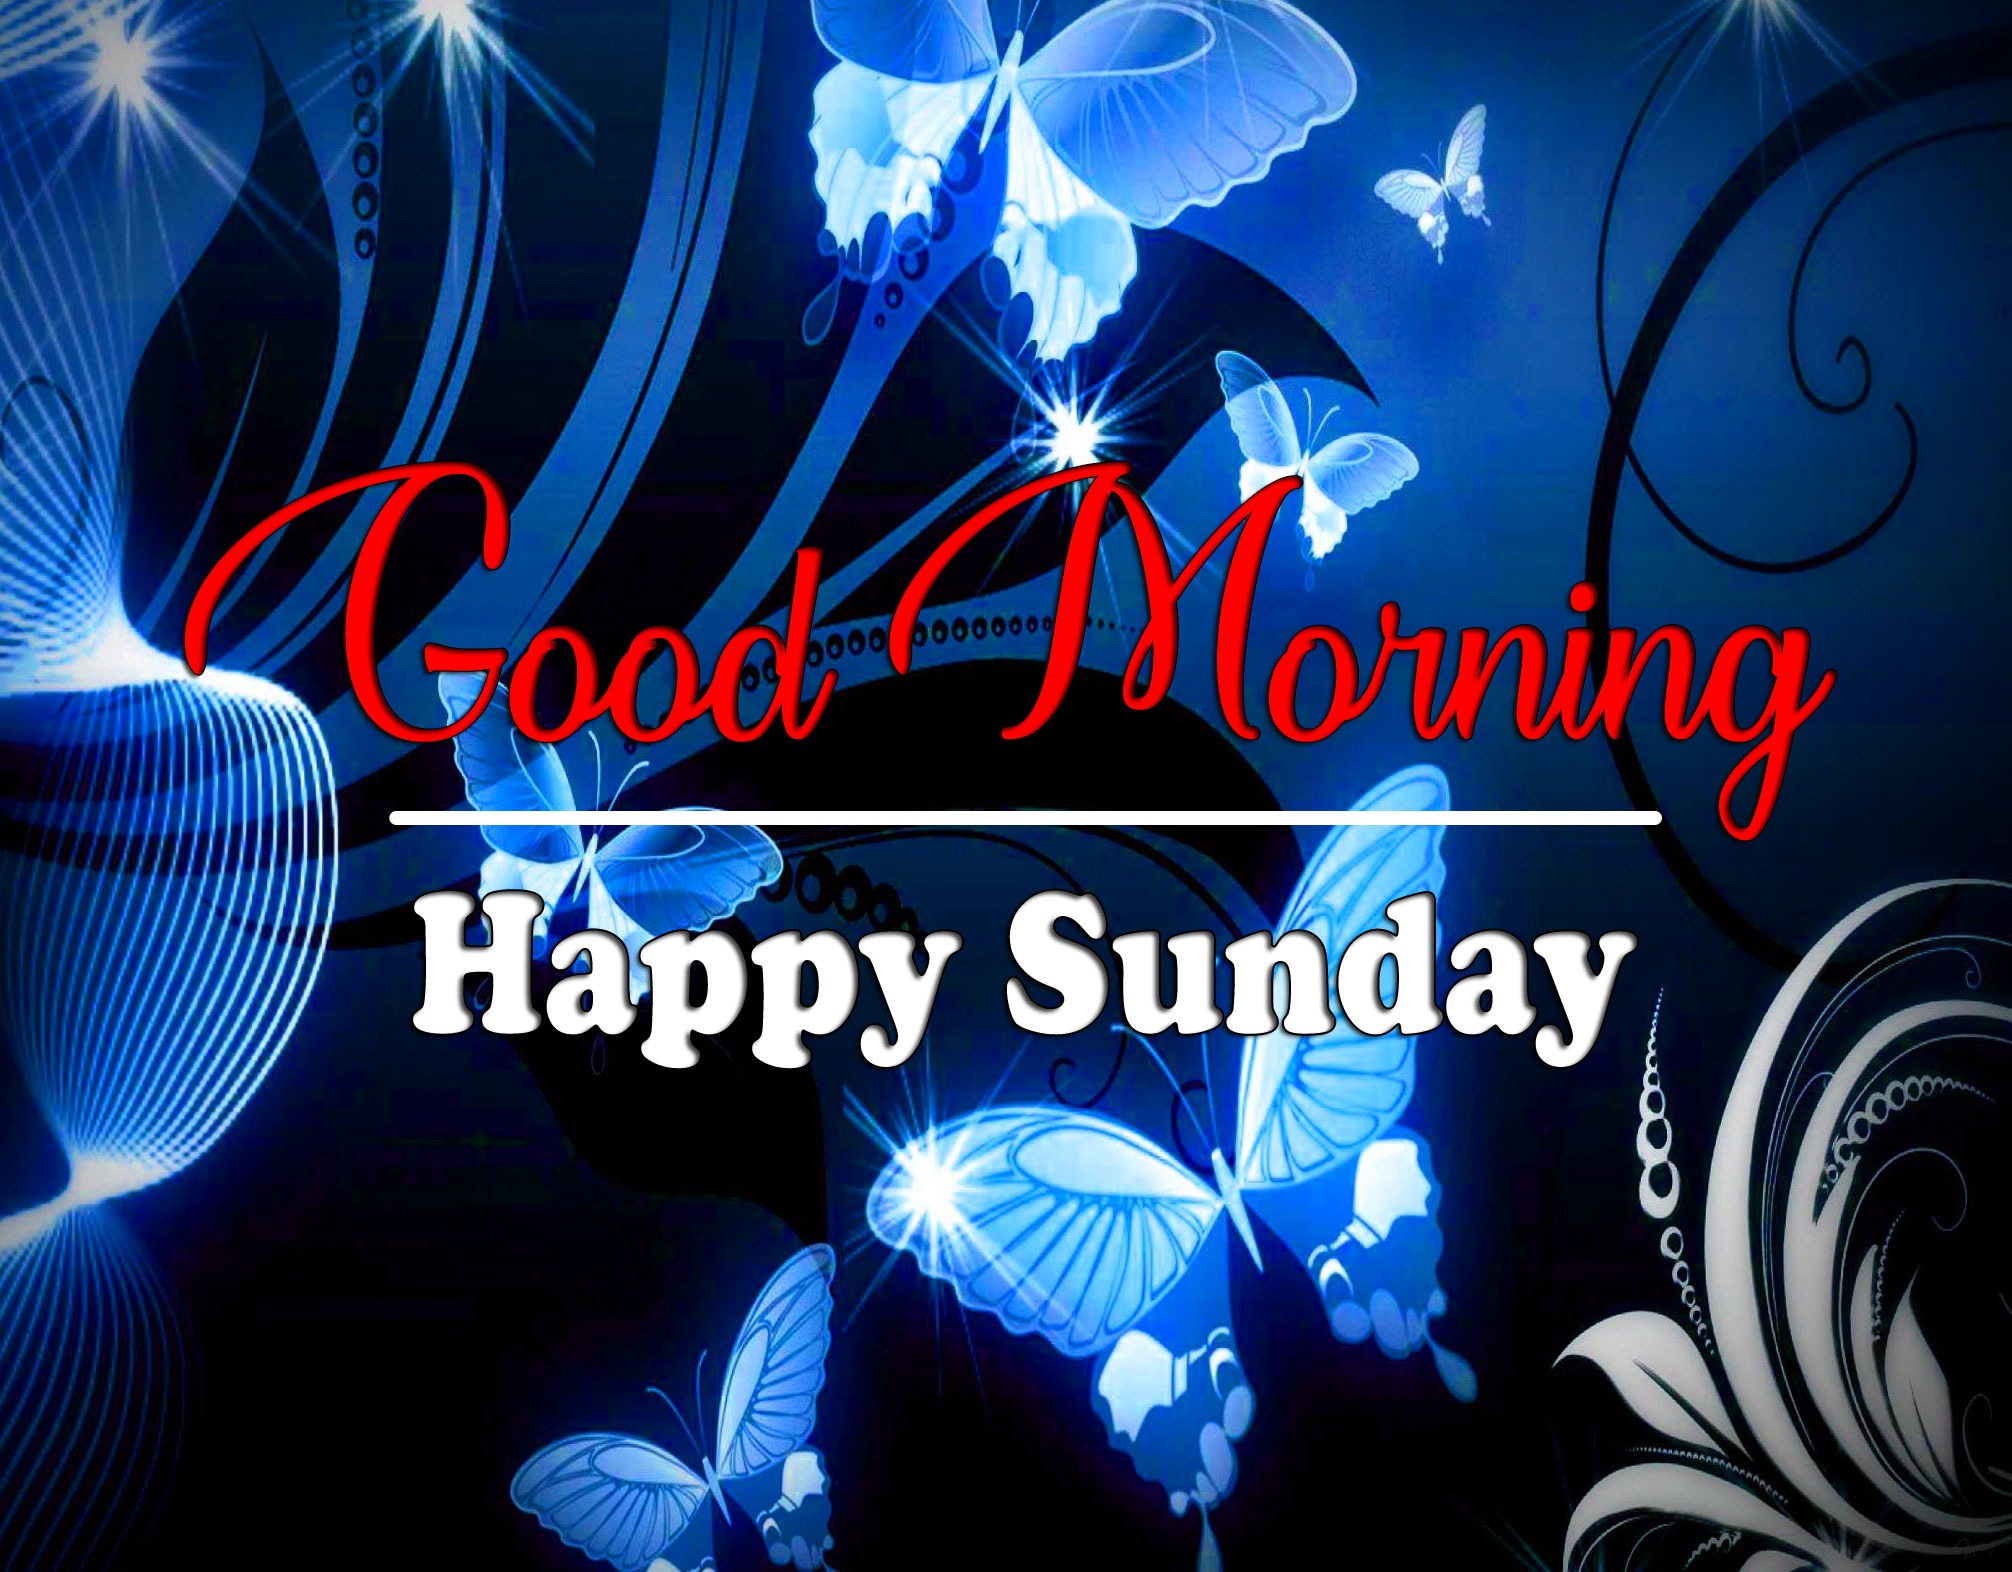 Today sunday good morning Images